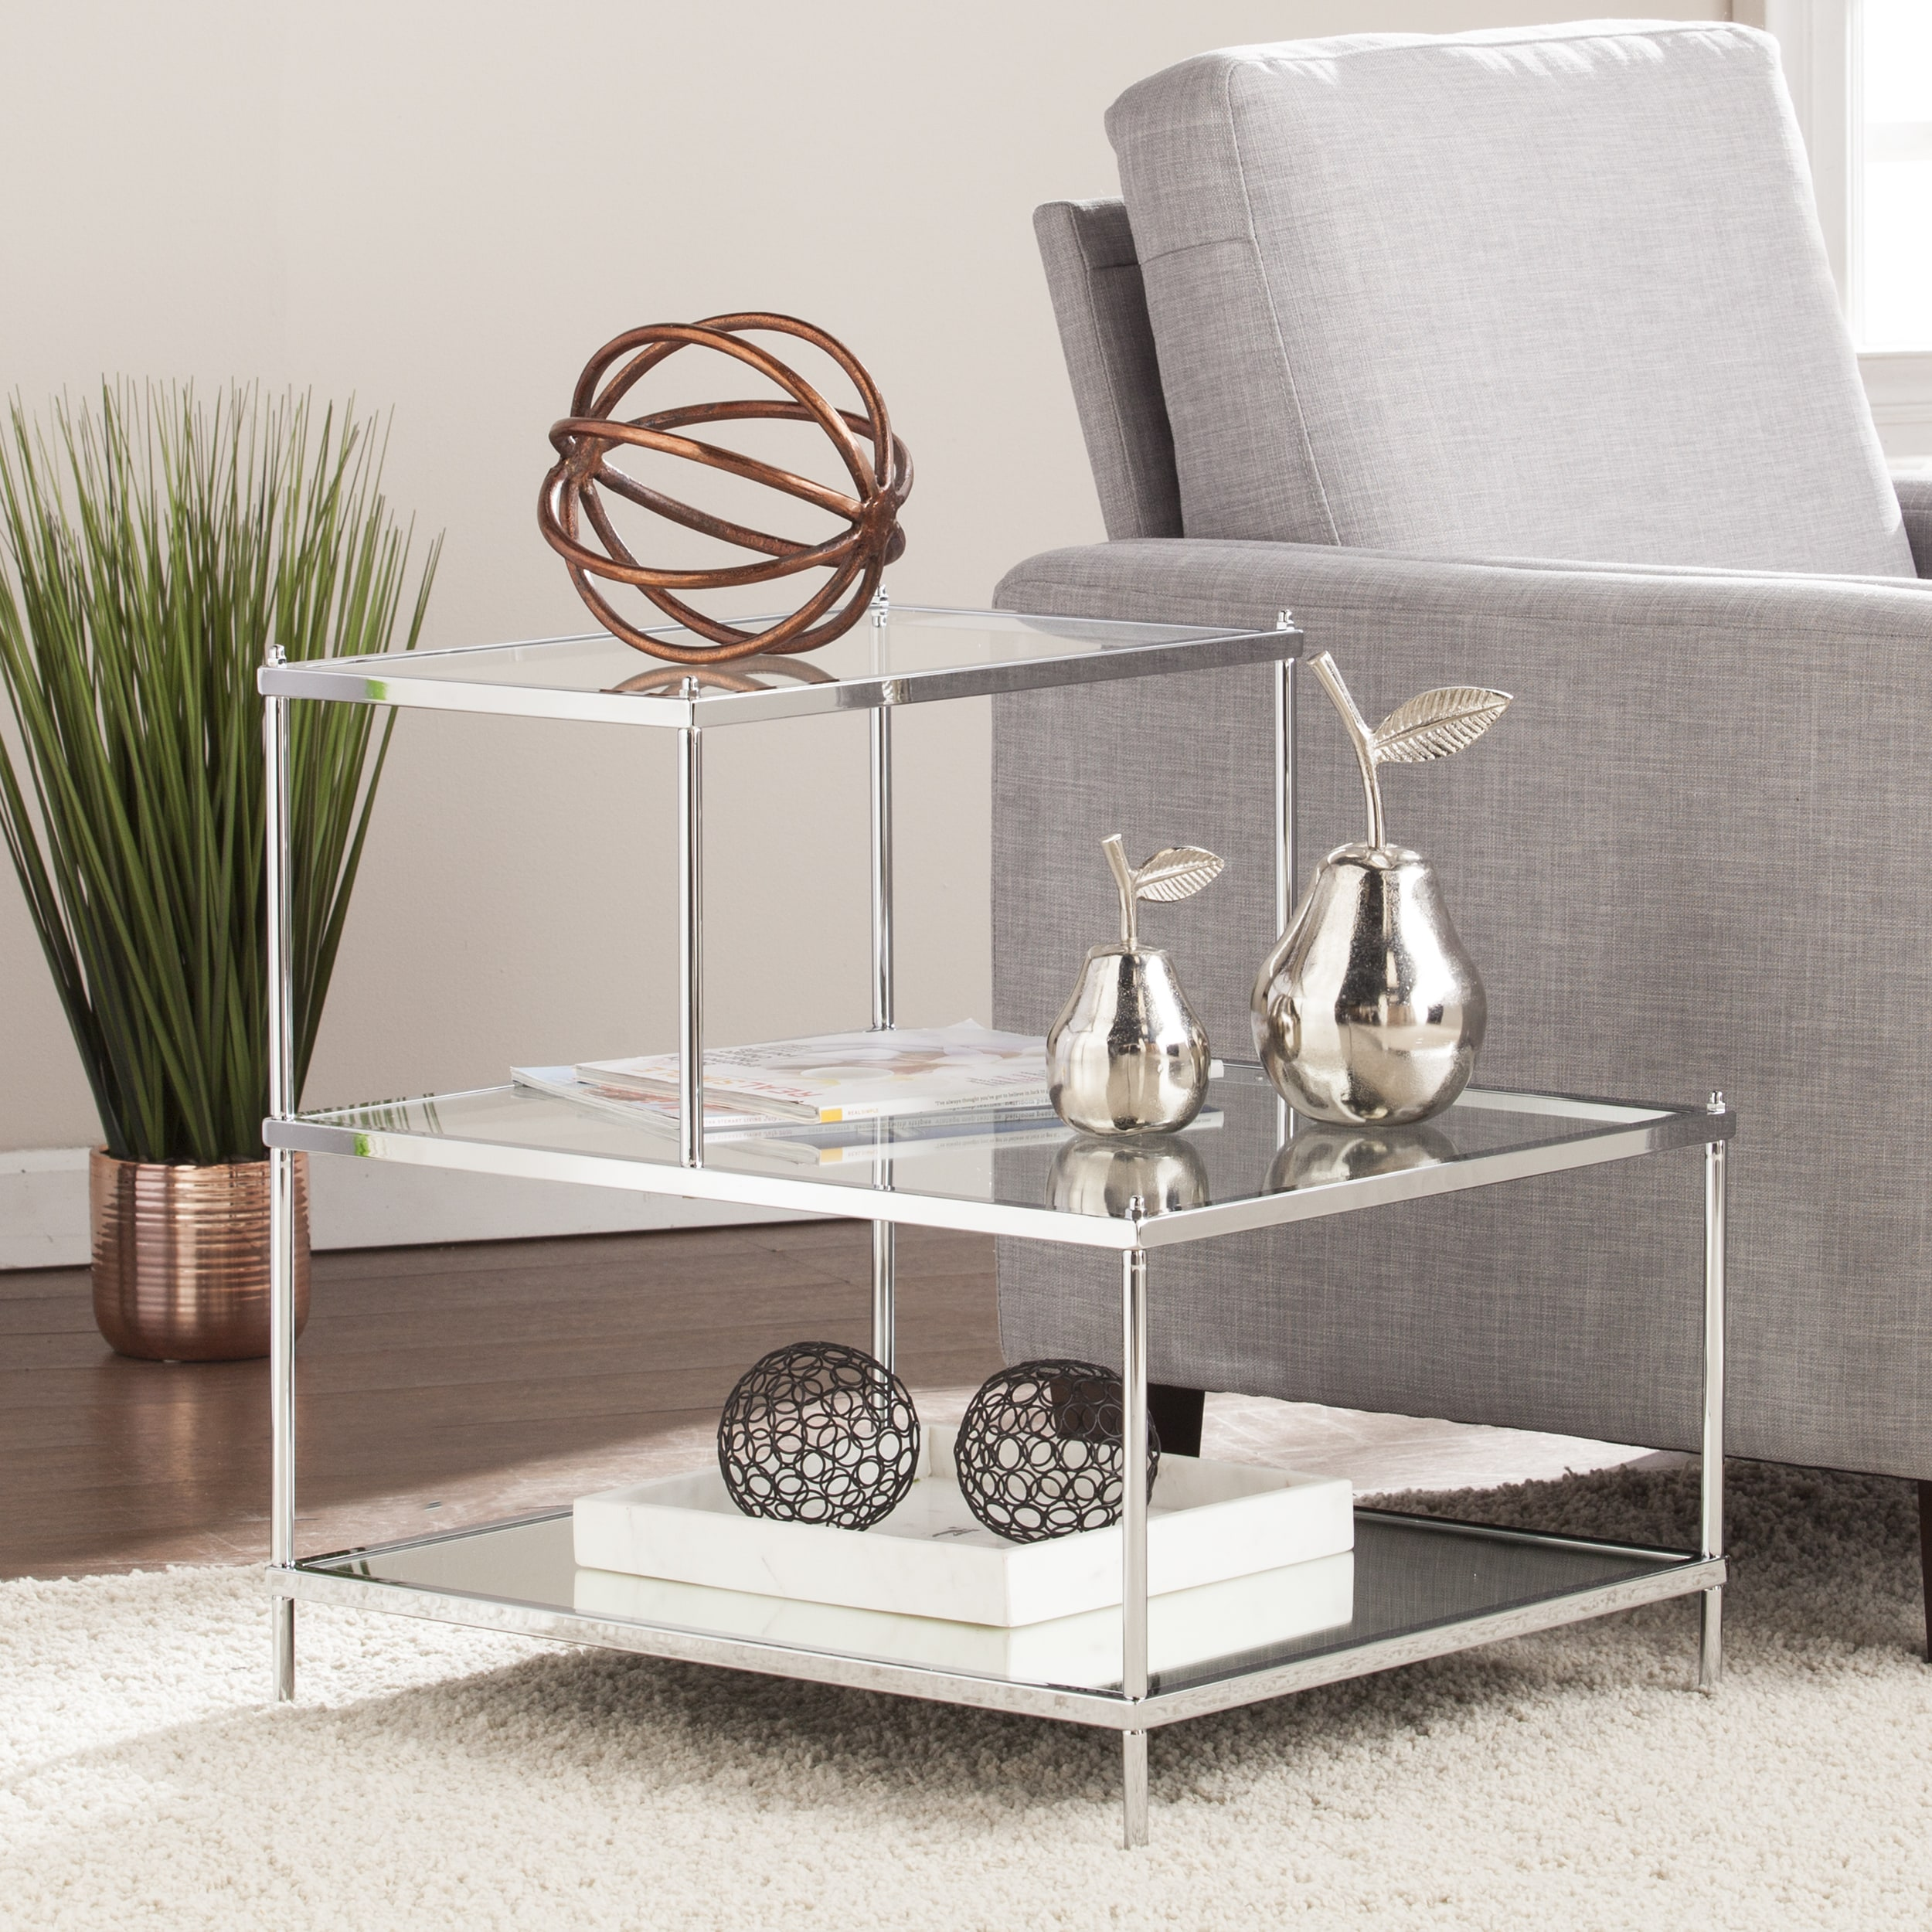 Harper Blvd Knowles Glam Mirrored Accent Table – Chrome Free